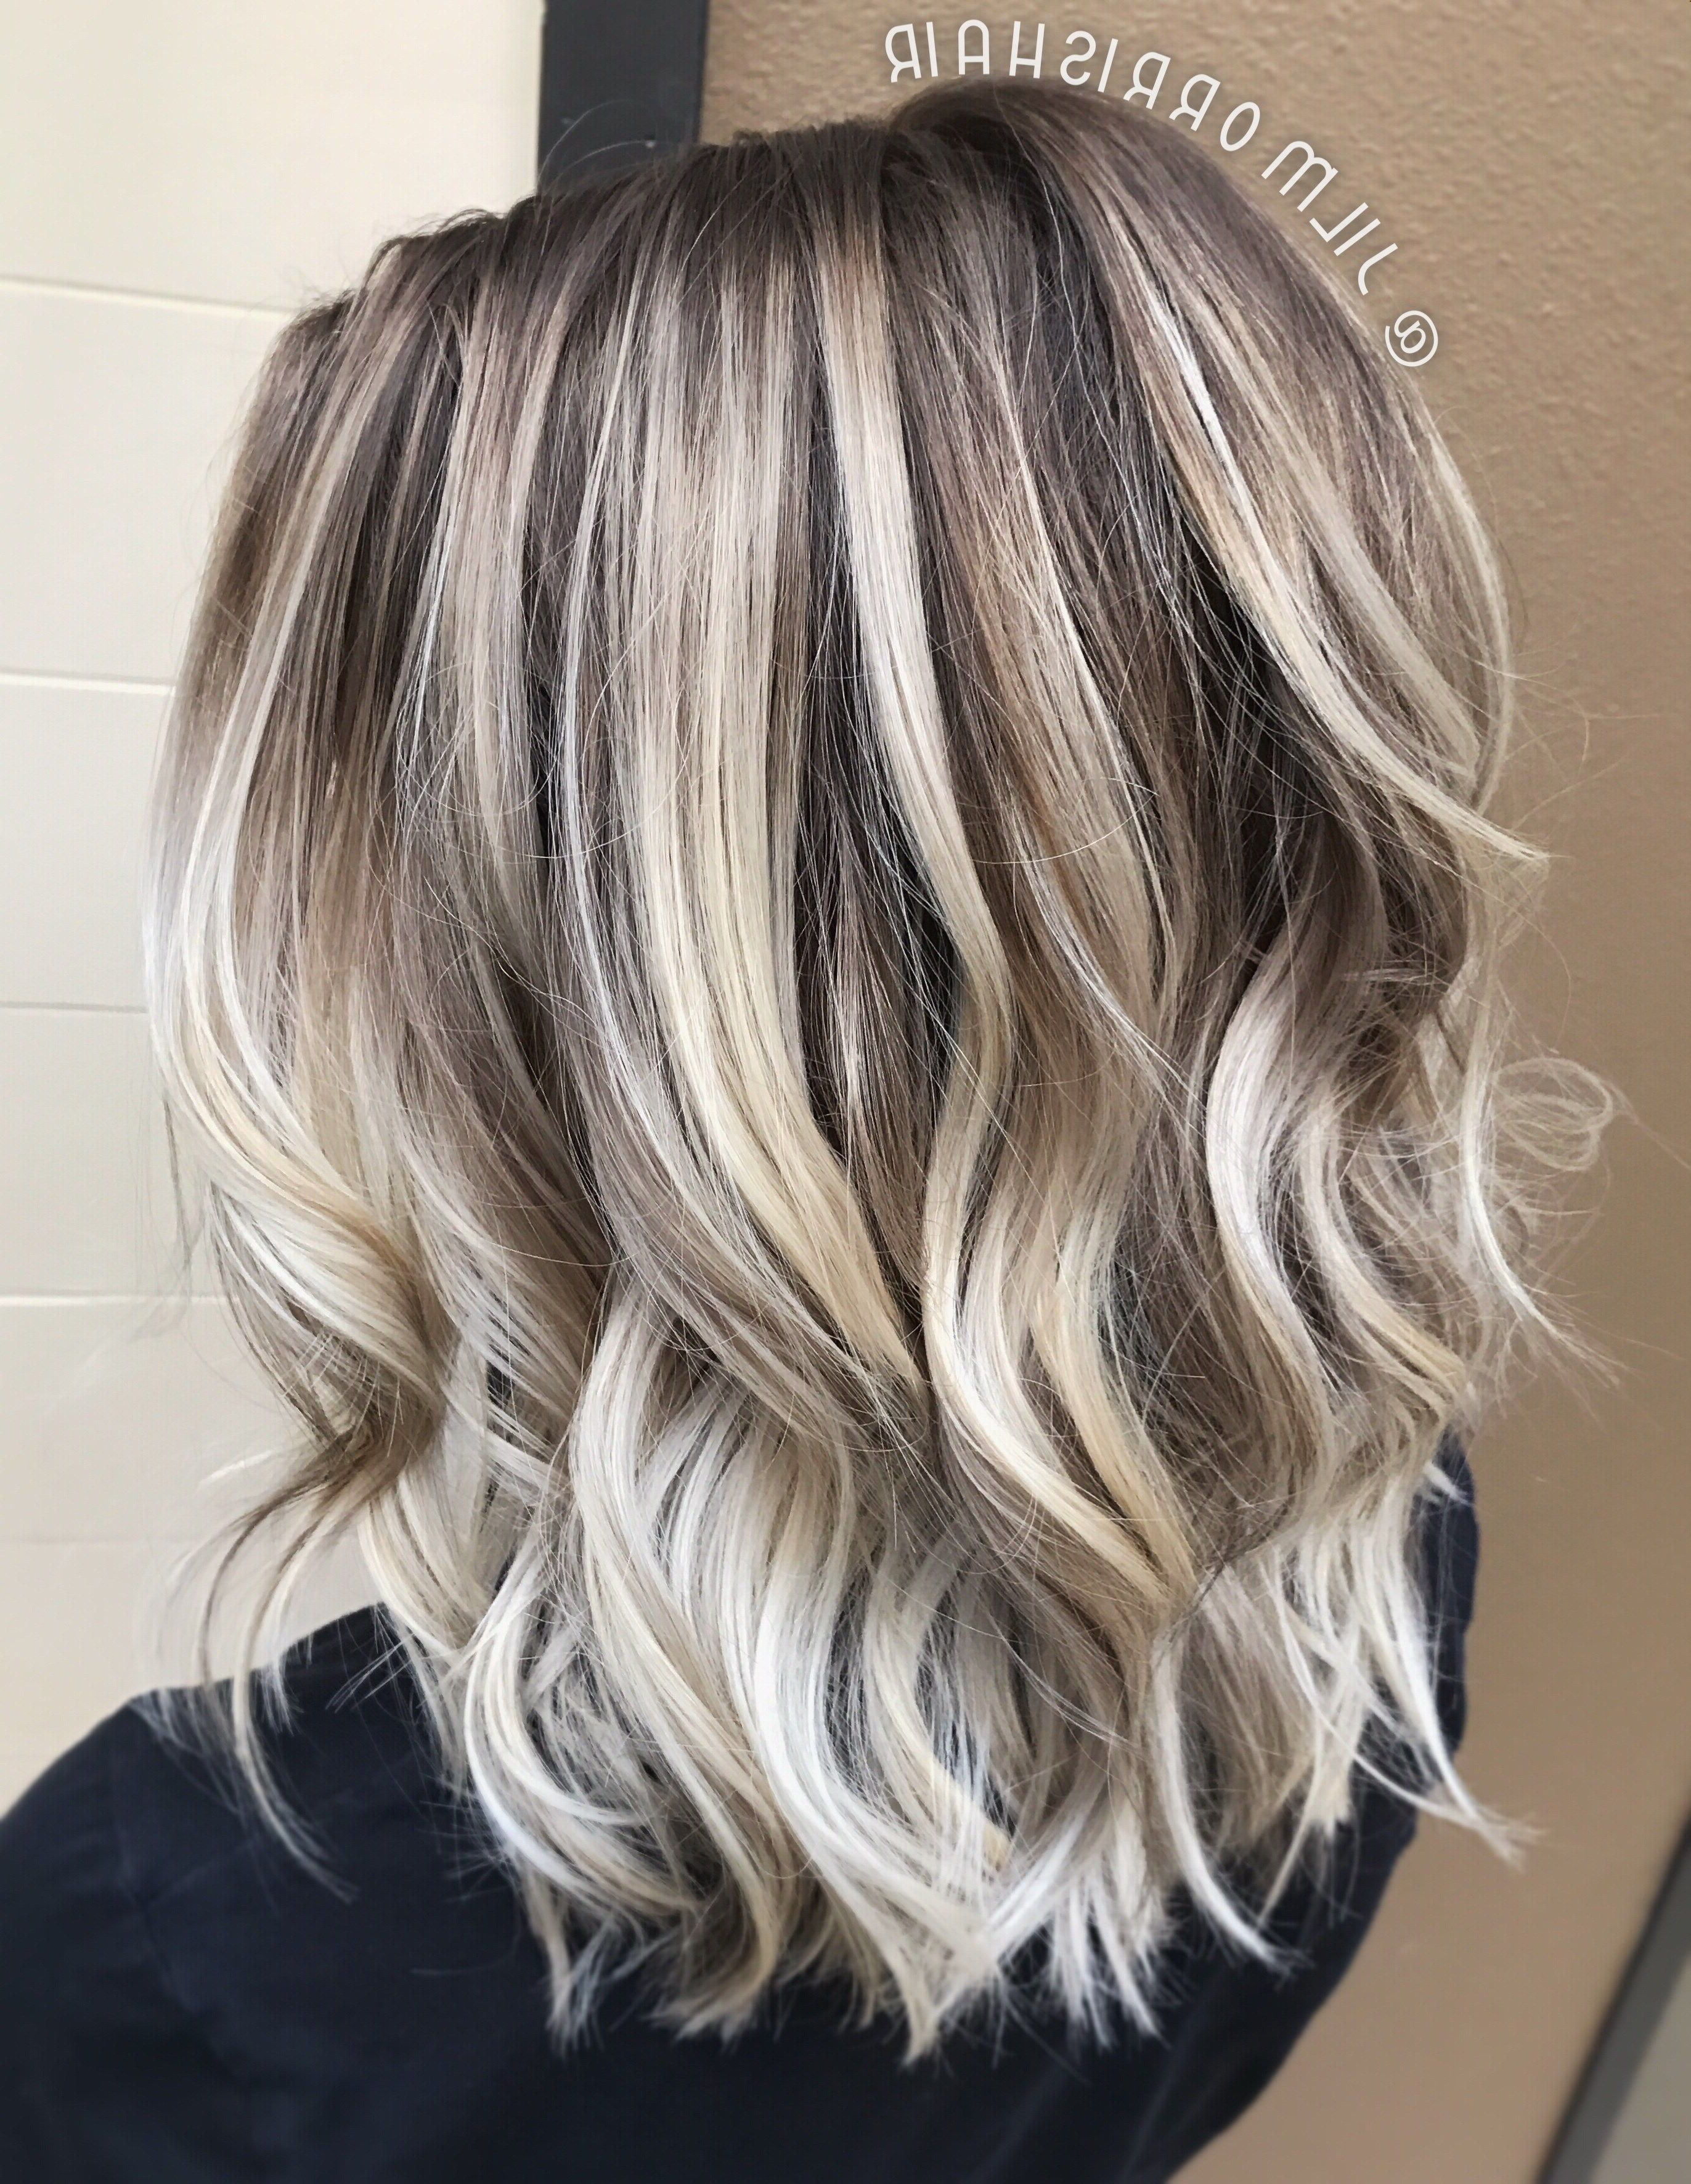 2018 Loose Curls Blonde With Streaks In Hair Highlights – Cool Icy Ashy Blonde Balayage Highlights, Shadow (View 2 of 20)